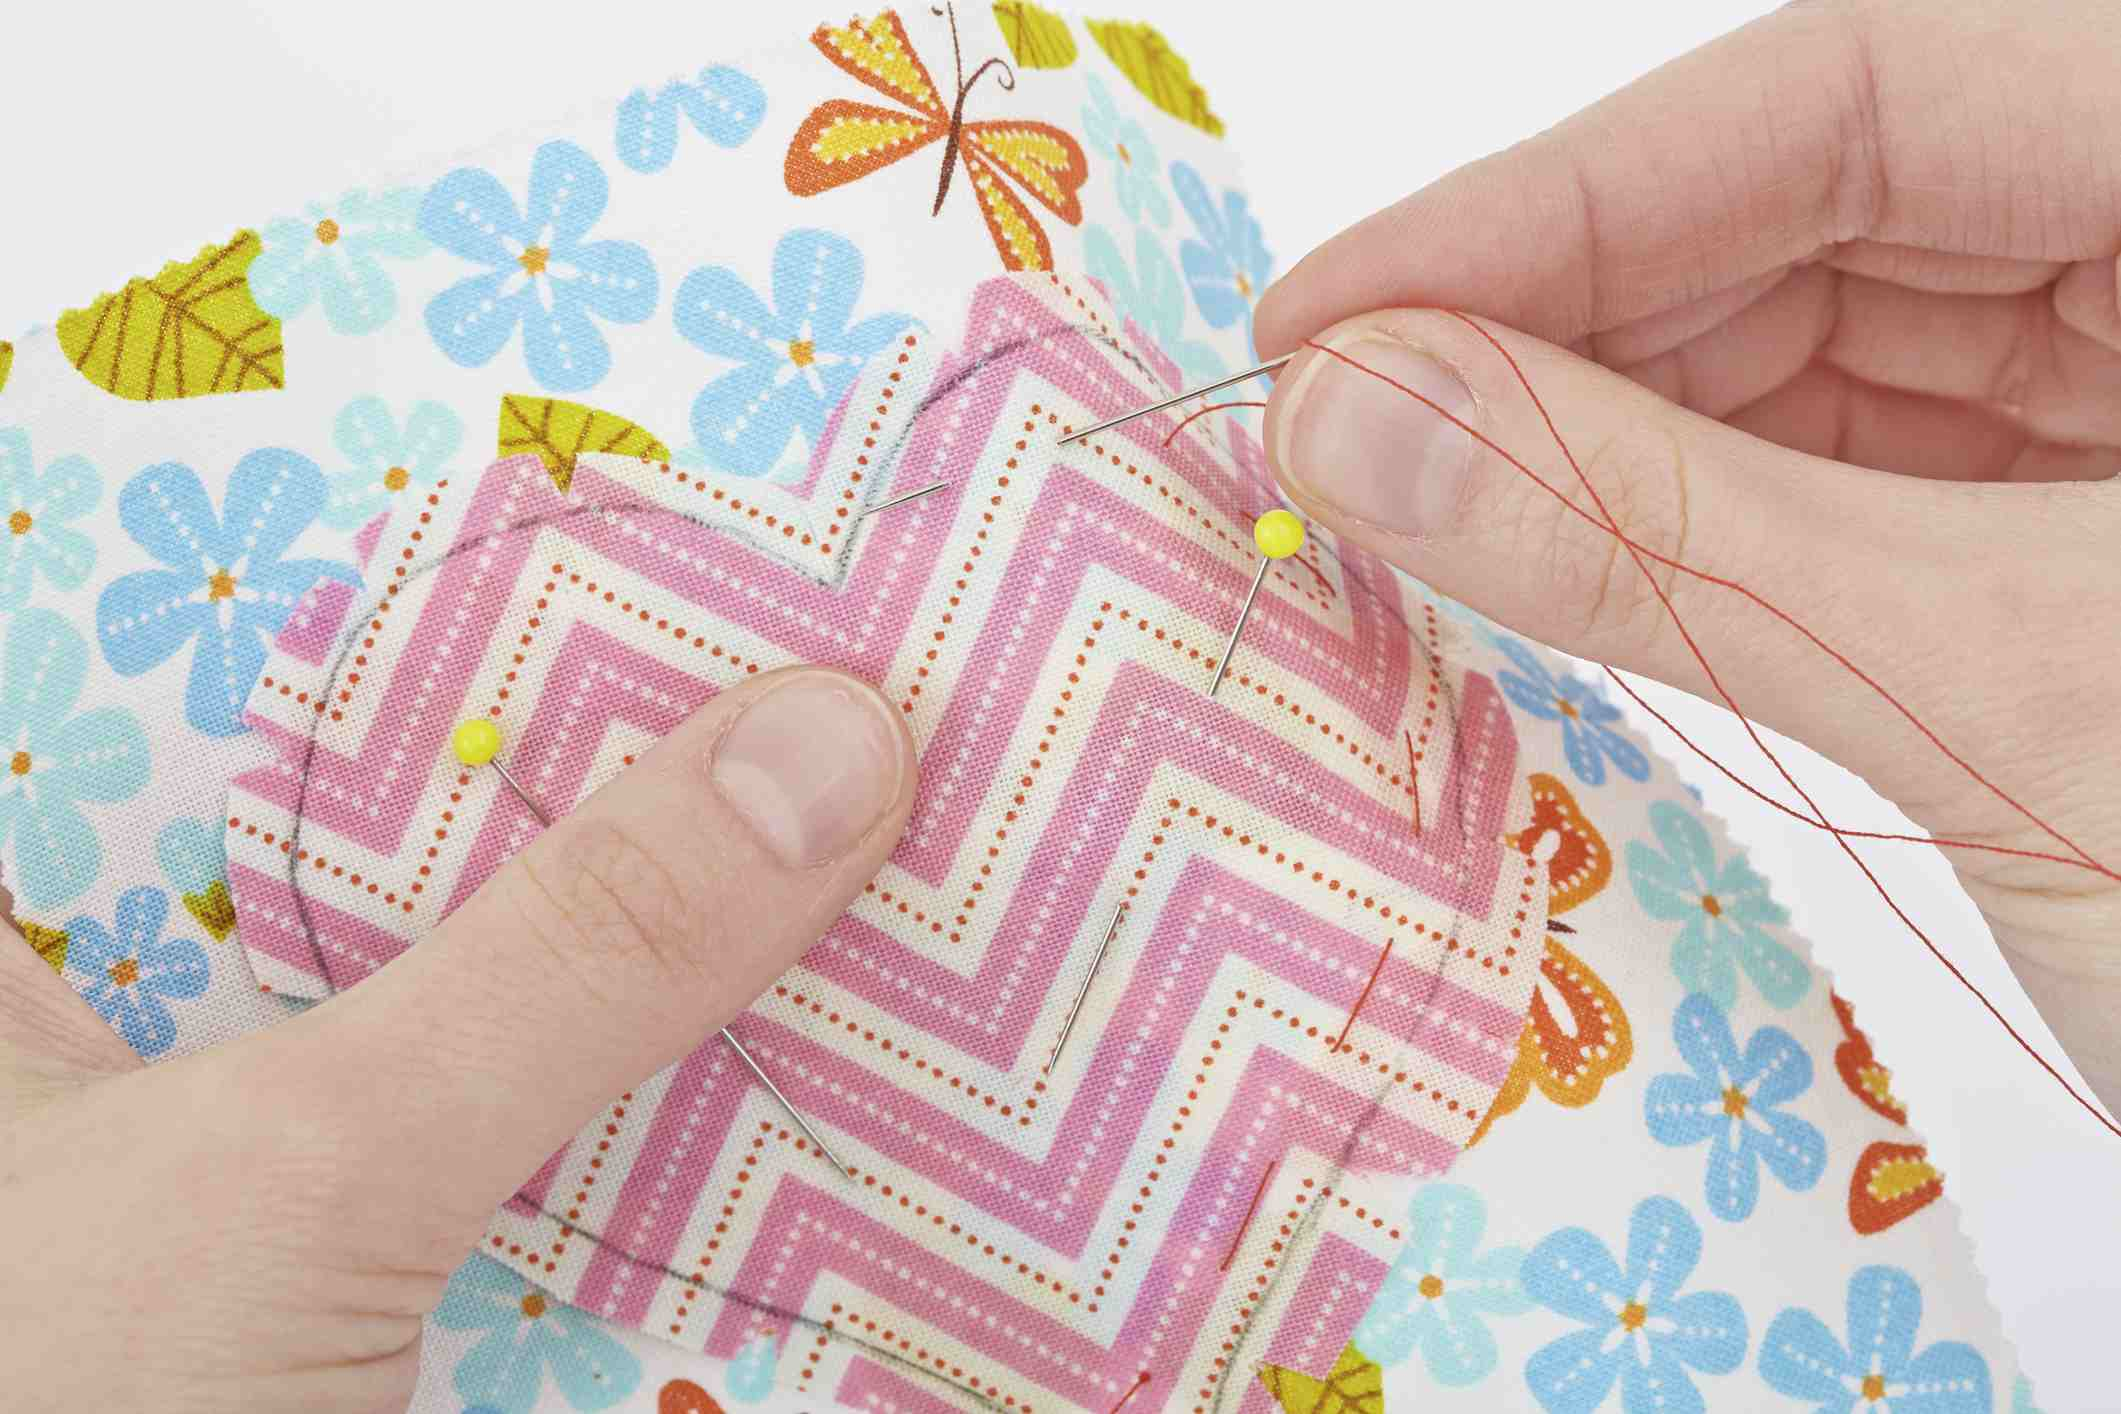 woman sewing quilt patch with sharps needle